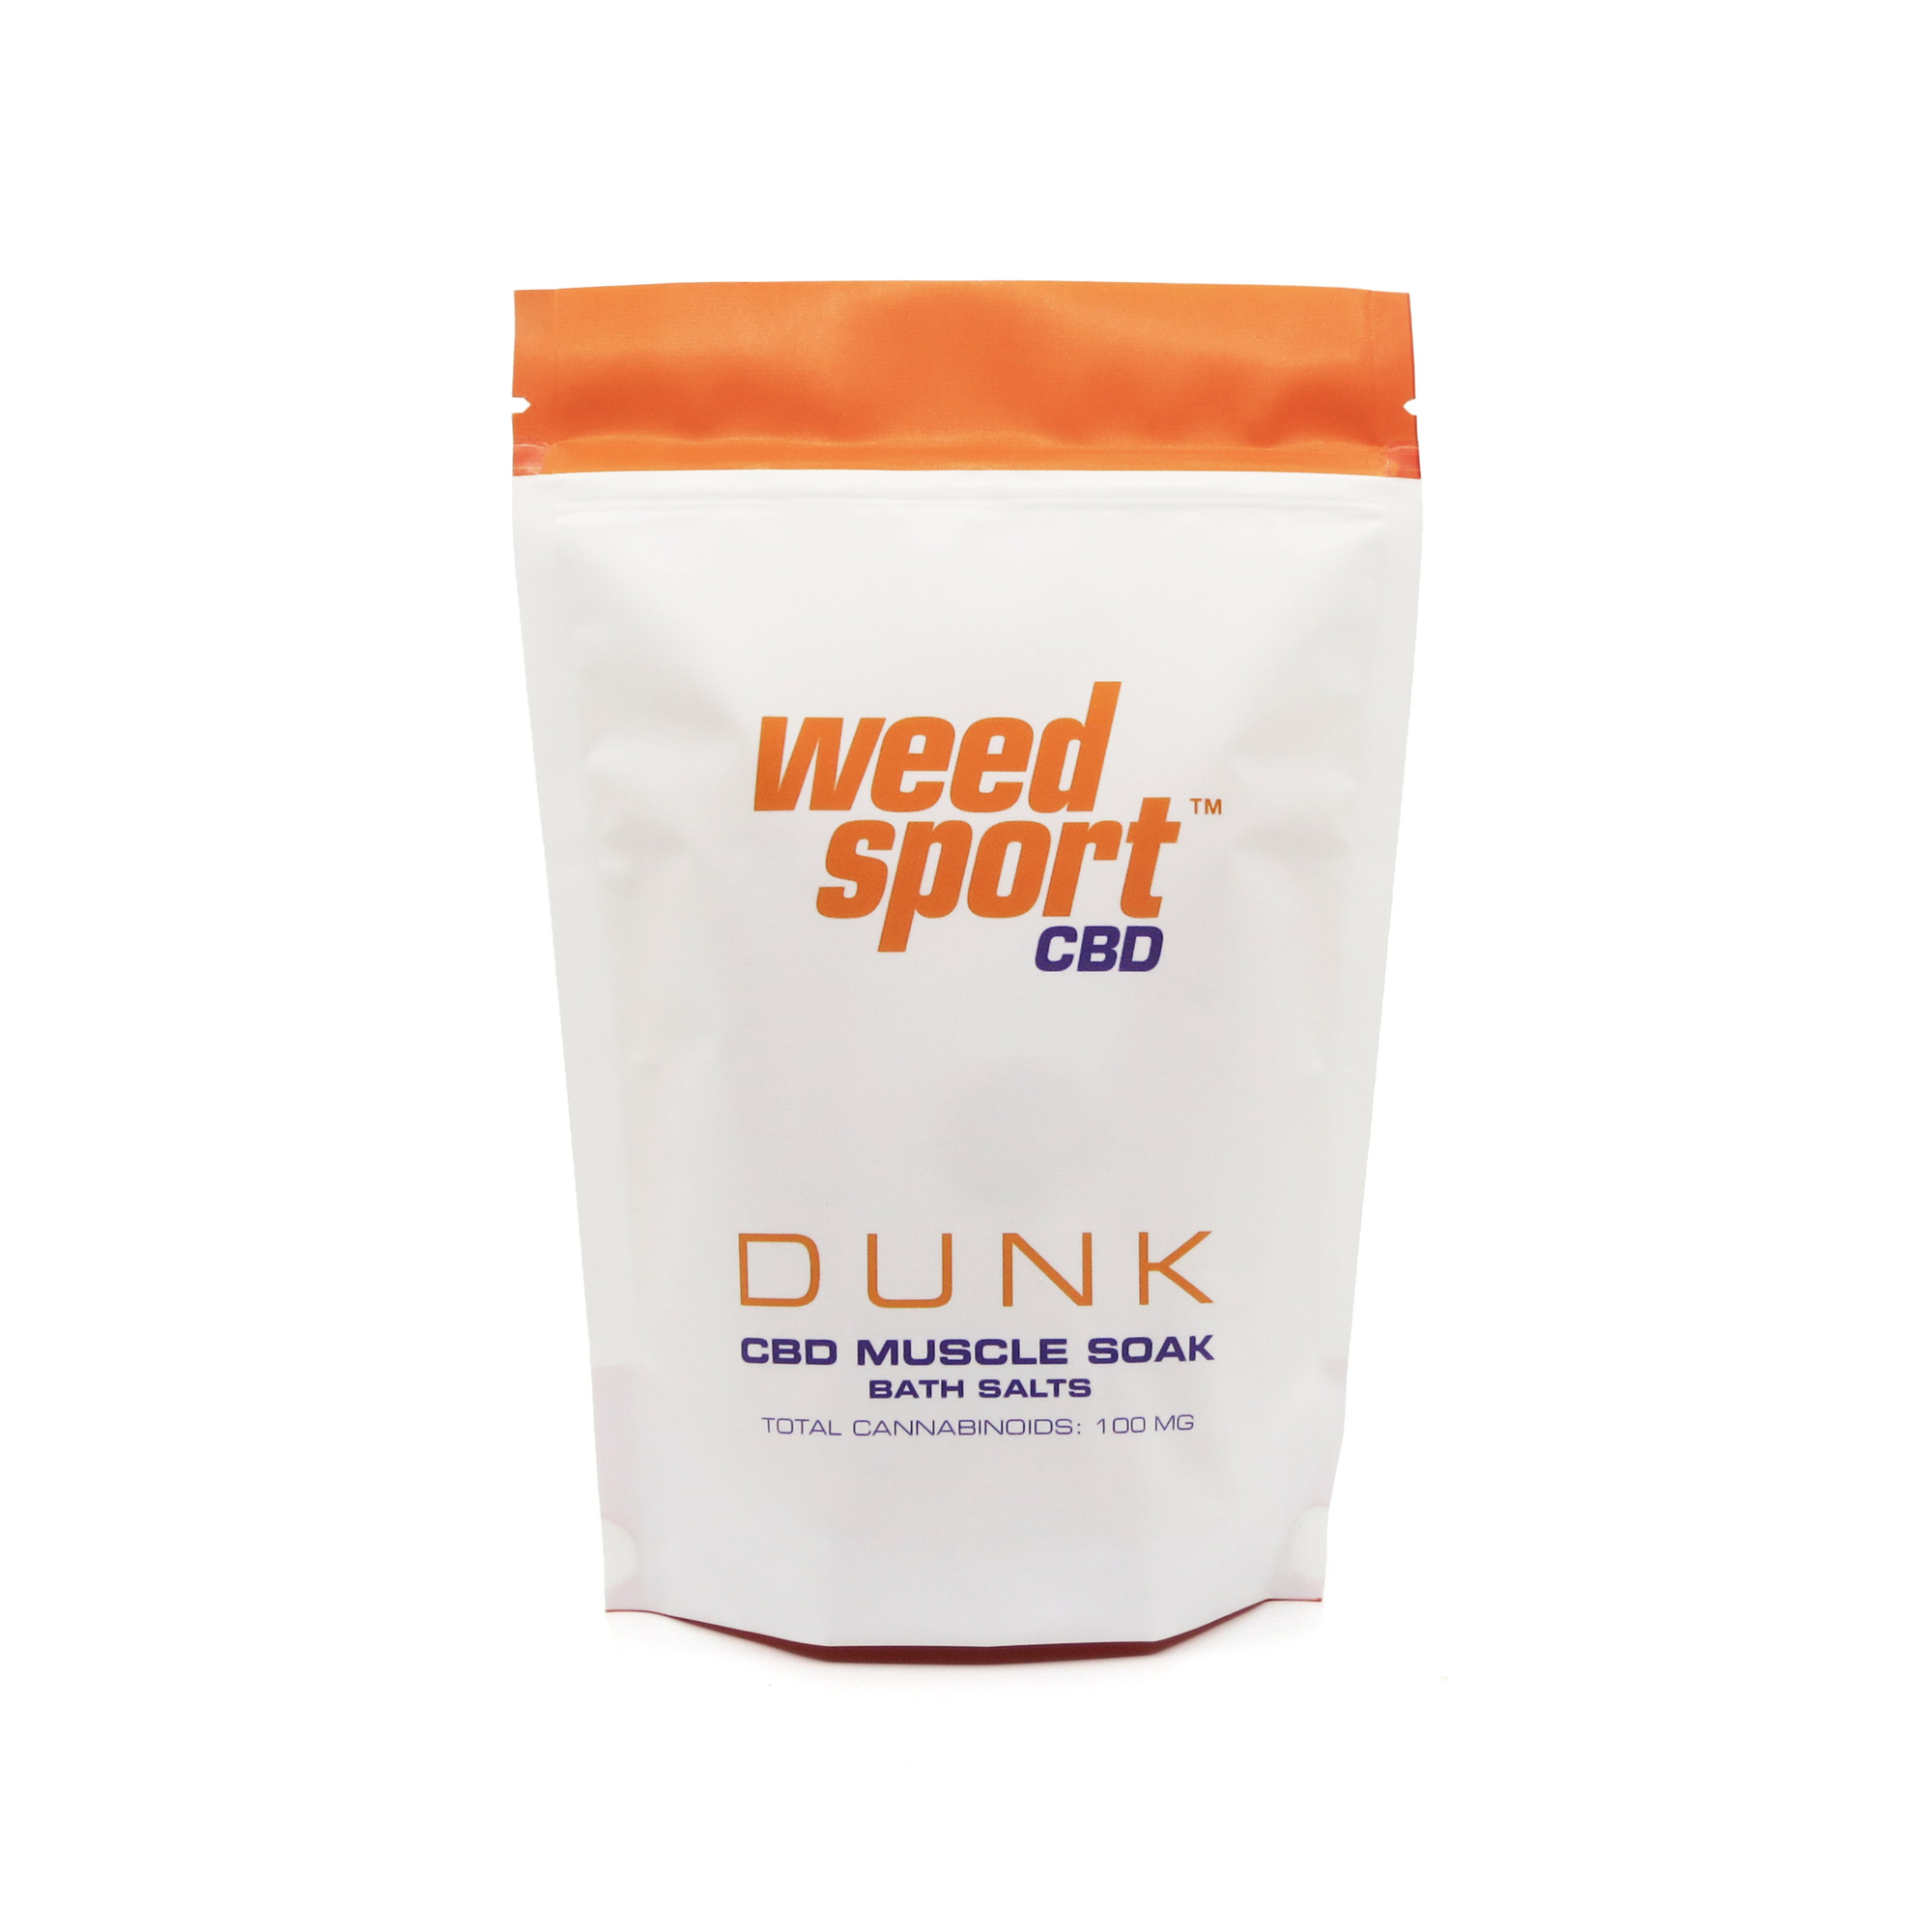 DUNK CBD Muscle Soak